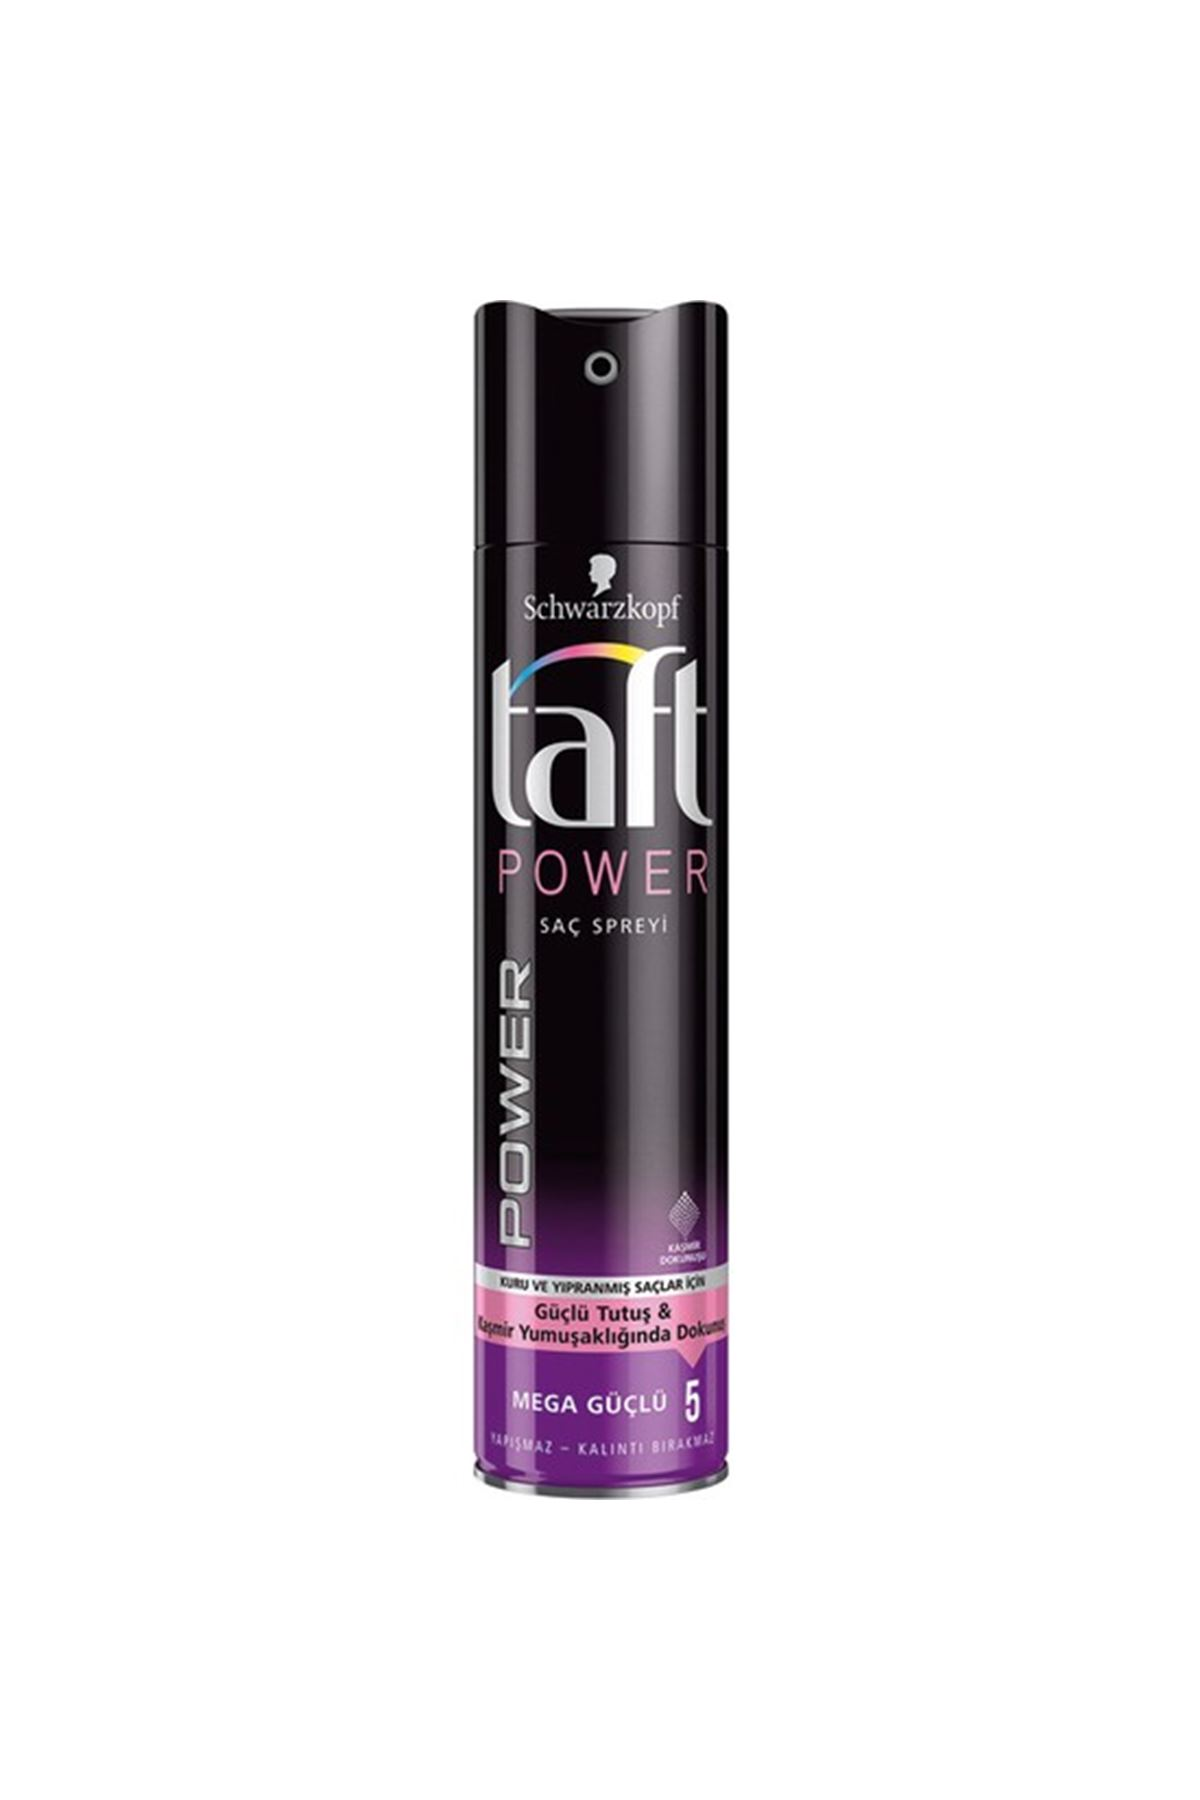 Taft Power Cashmere No 5 Saç Spreyi 250 ml